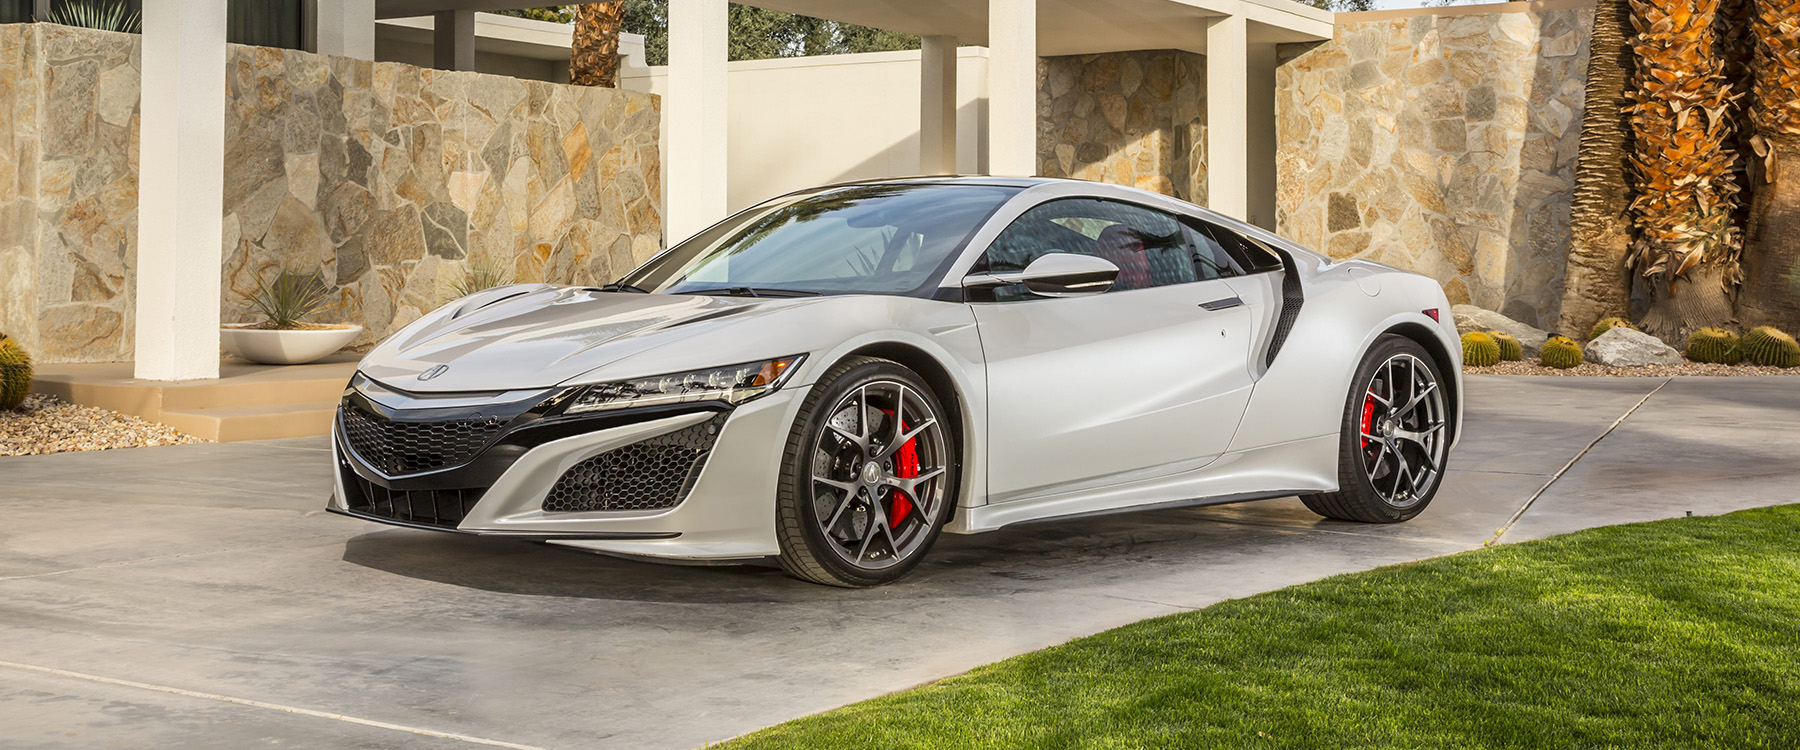 The Acura NSX Is One Of The Best Luxury Sports Cars - Best midsize sports car